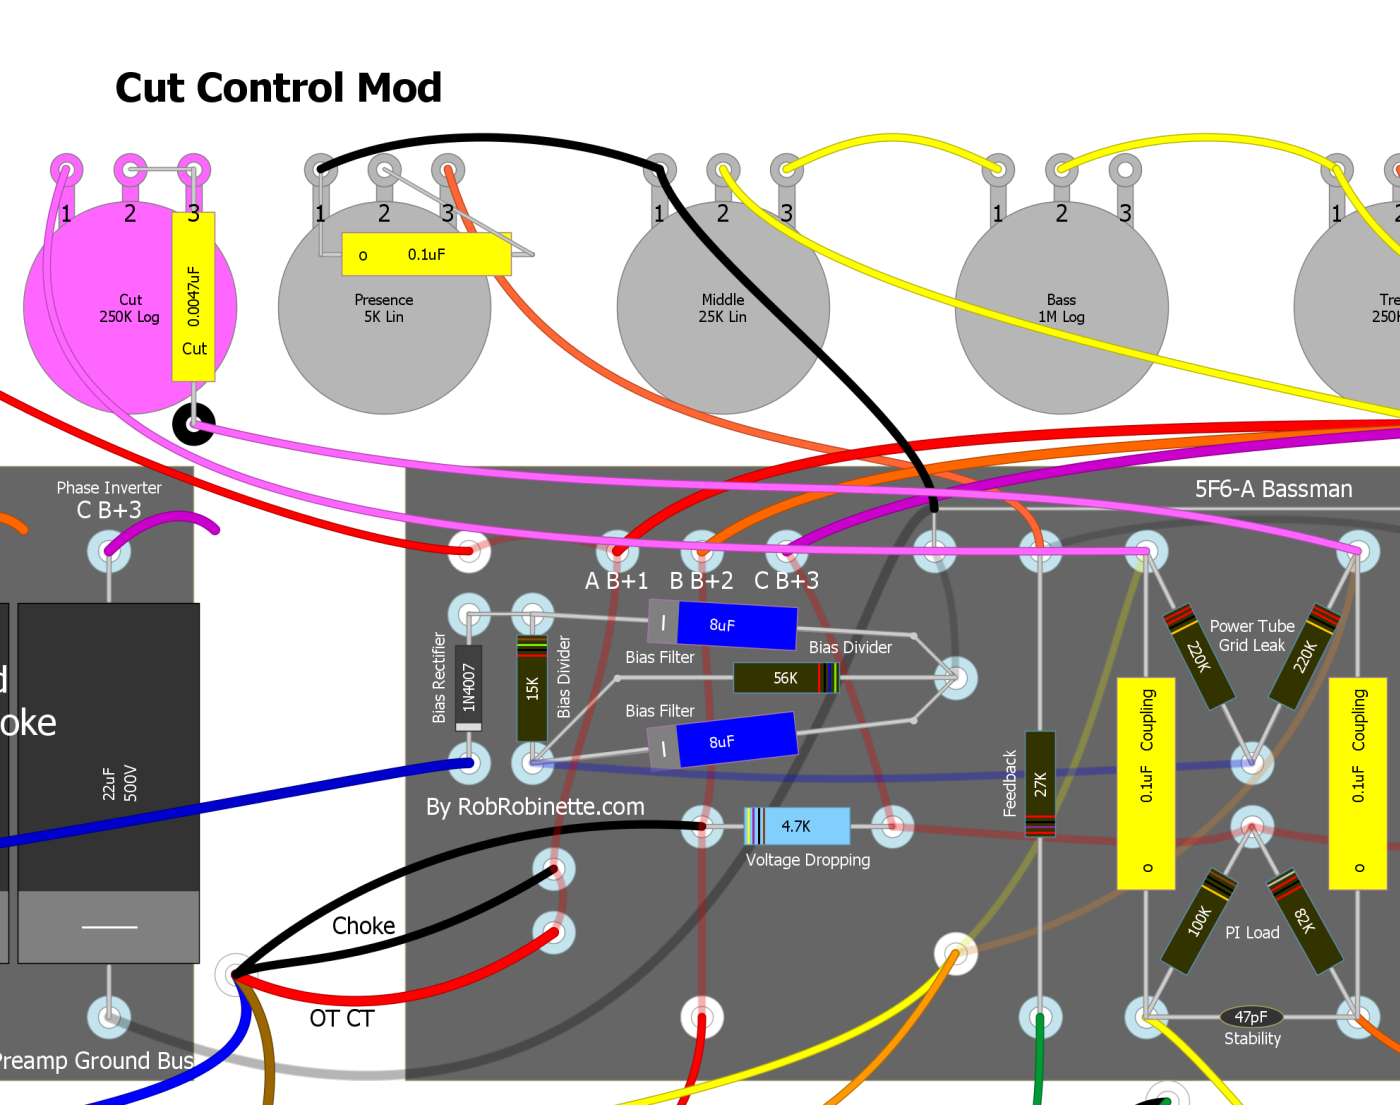 Amp Mods Framus Guitar Wiring Diagram Cut Control On 5f6a Bassman